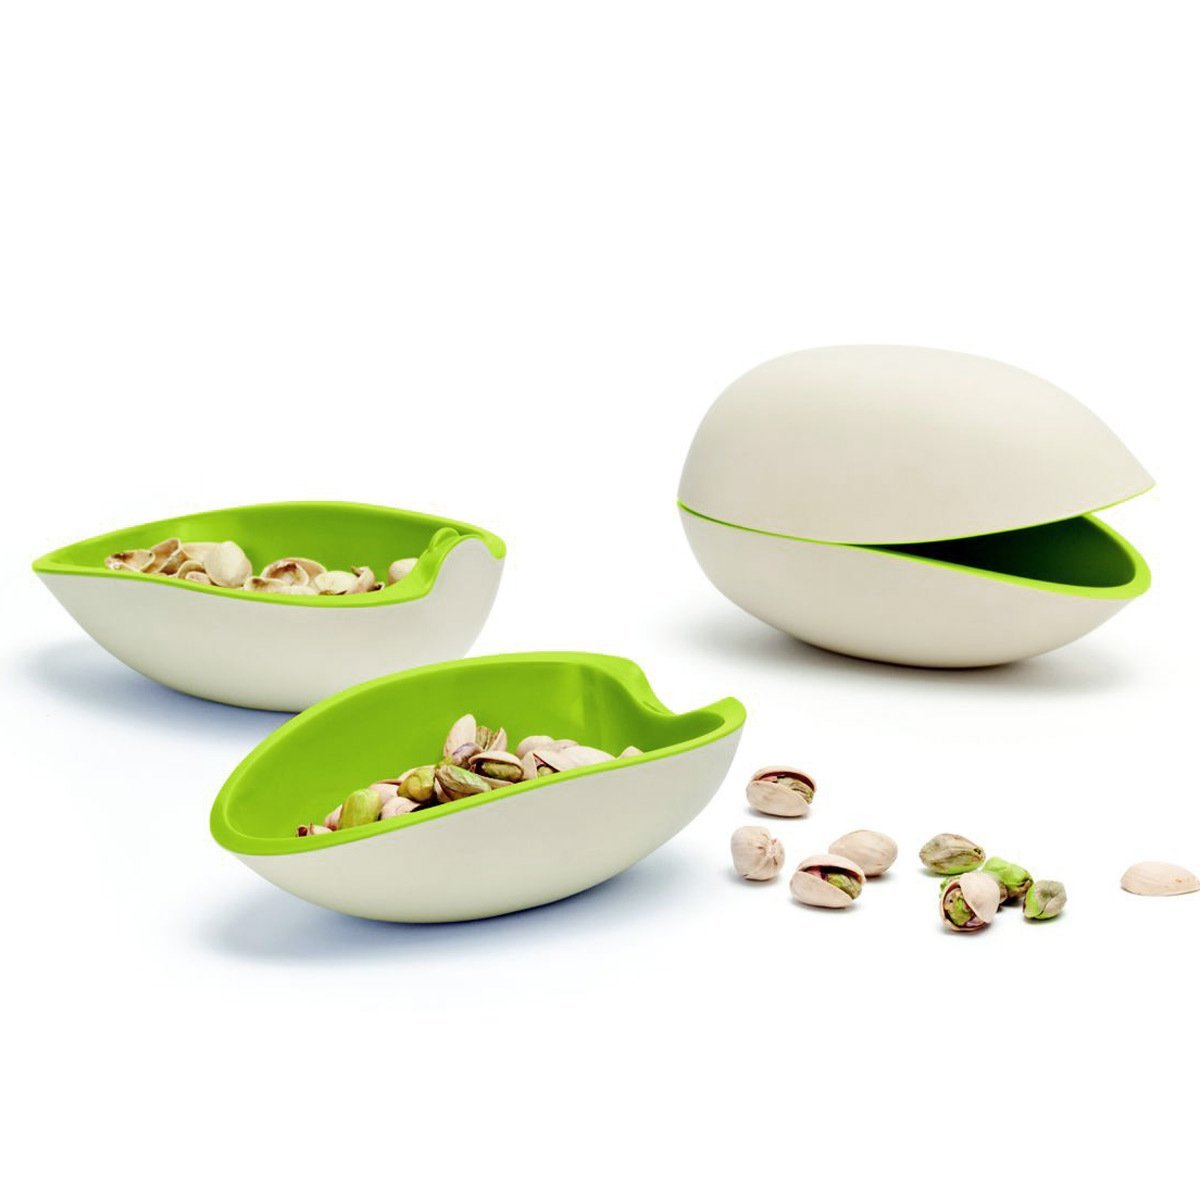 Ototo Pistachio Nuts and Seeds Serving Melamine Bowl Set 1